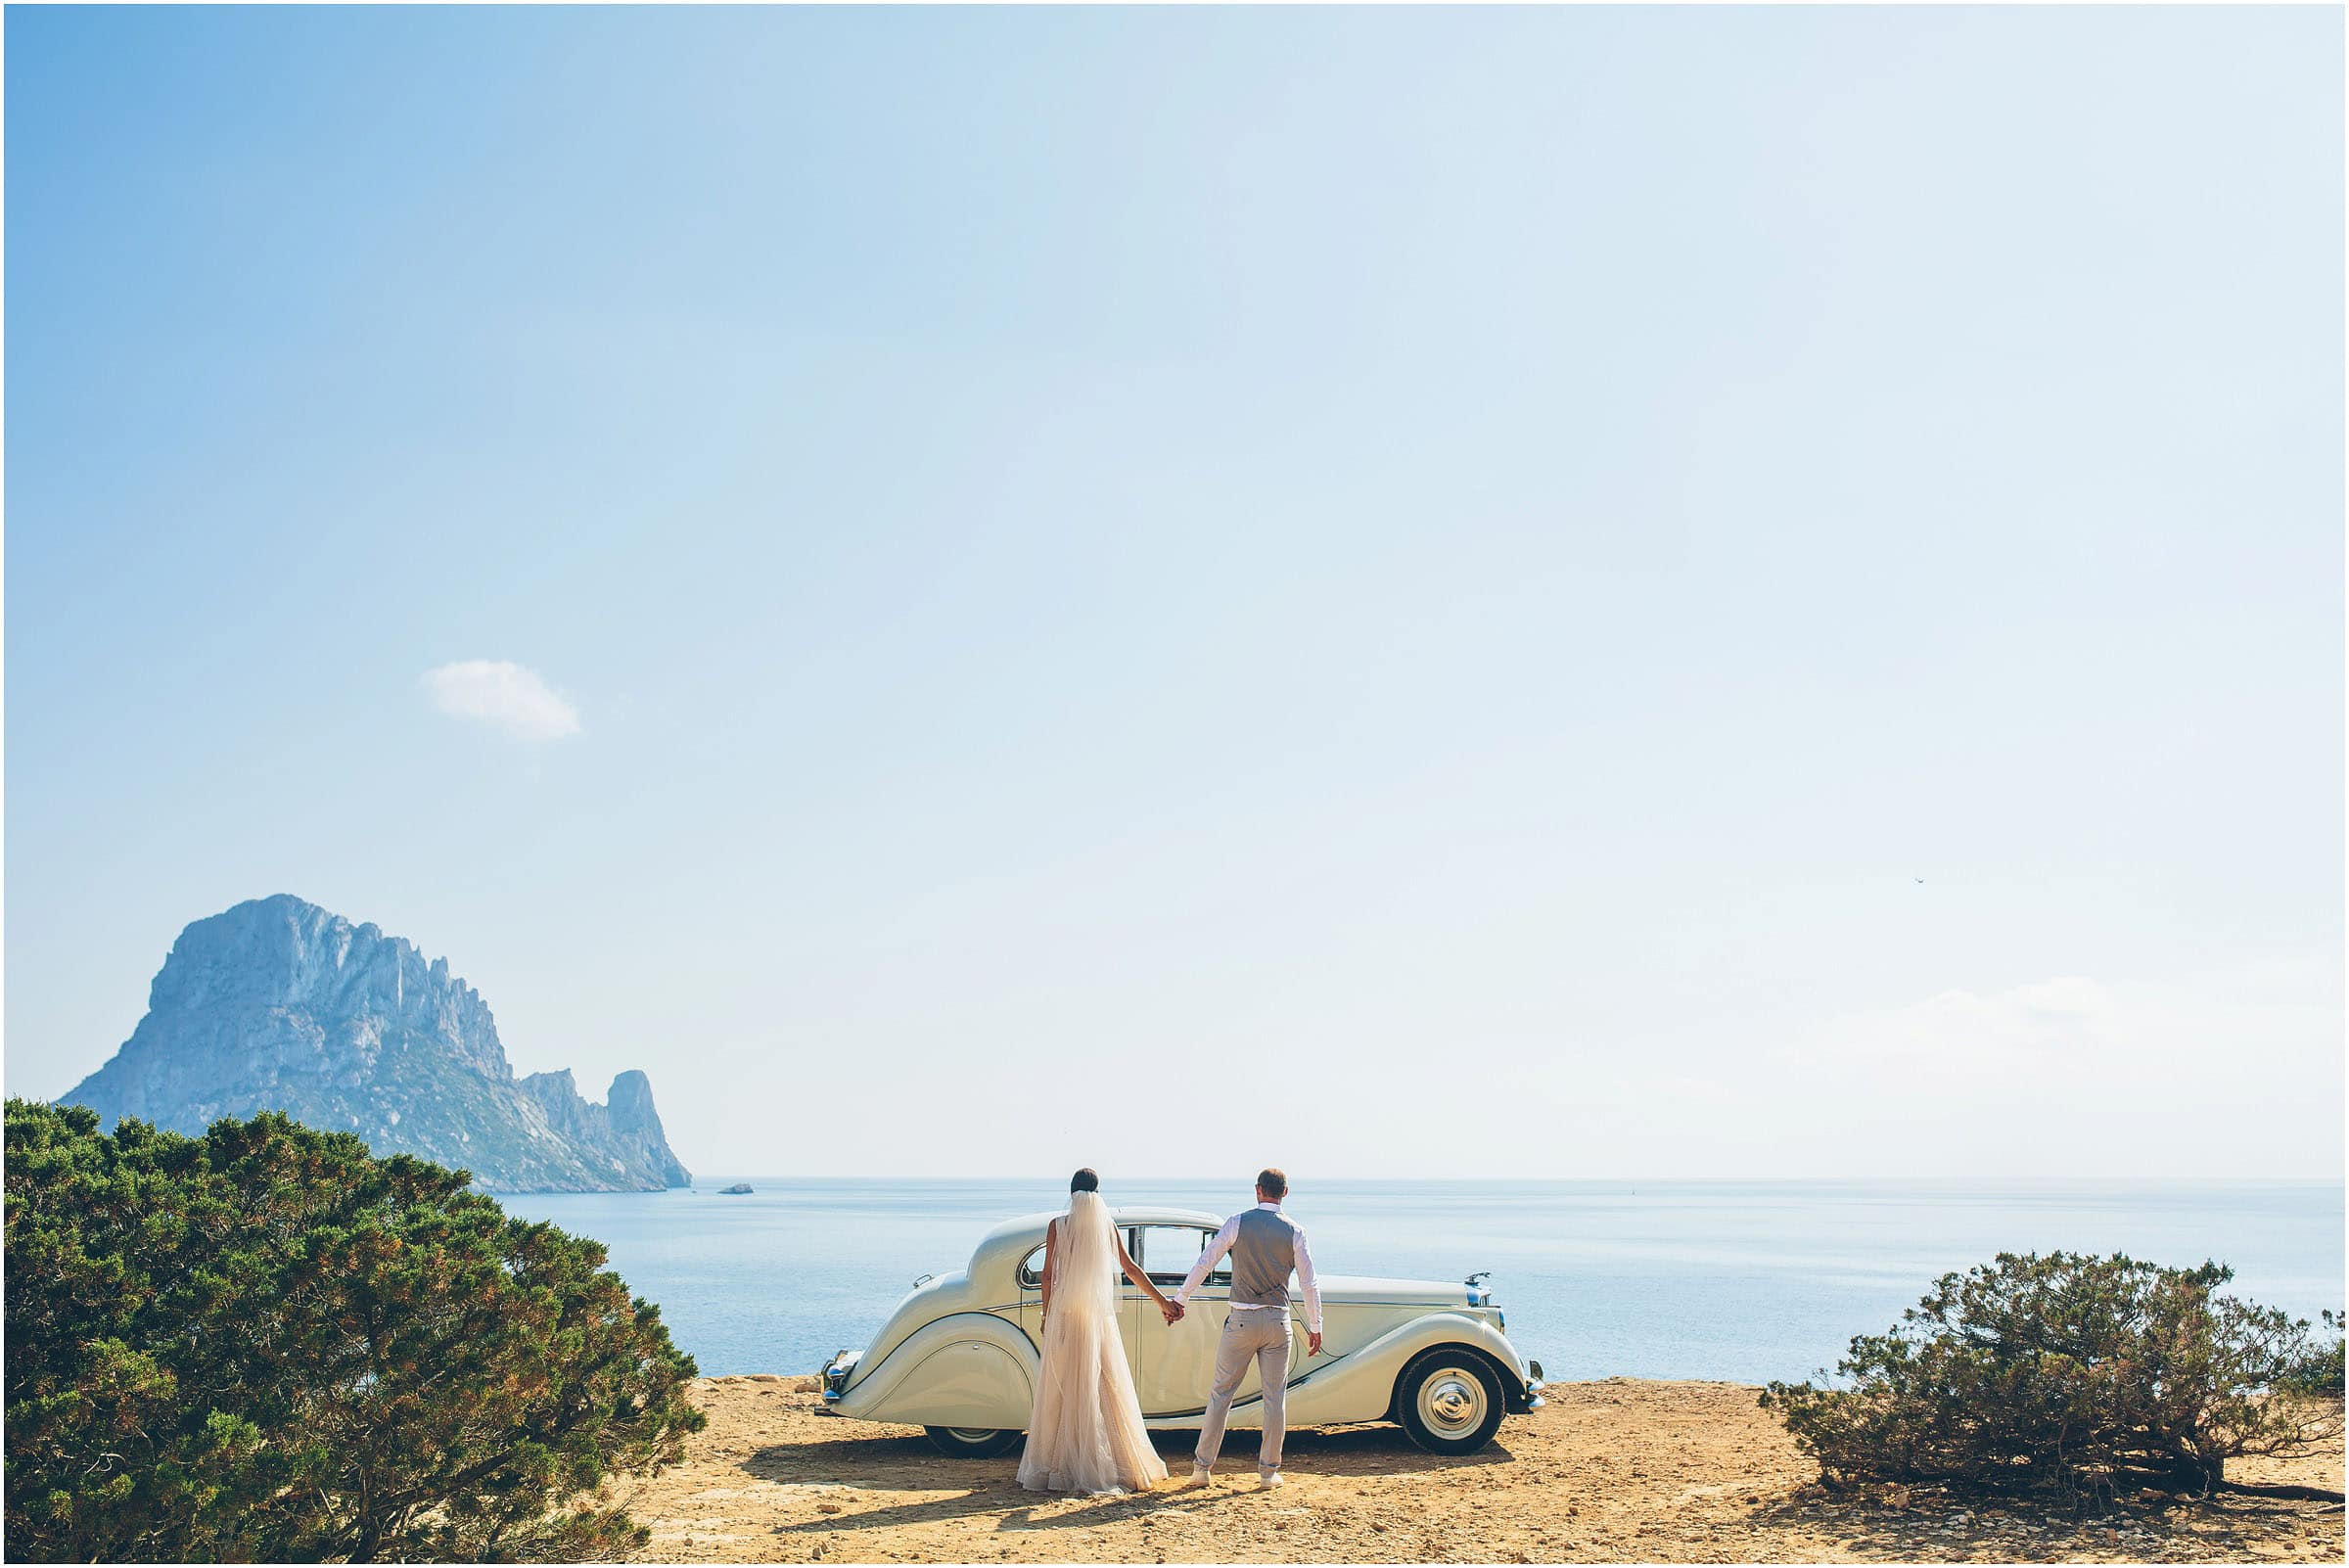 A couple on their destination wedding in Ibiza photographed standing on the beach in front of a classic car with the sea and a pale blue sky.